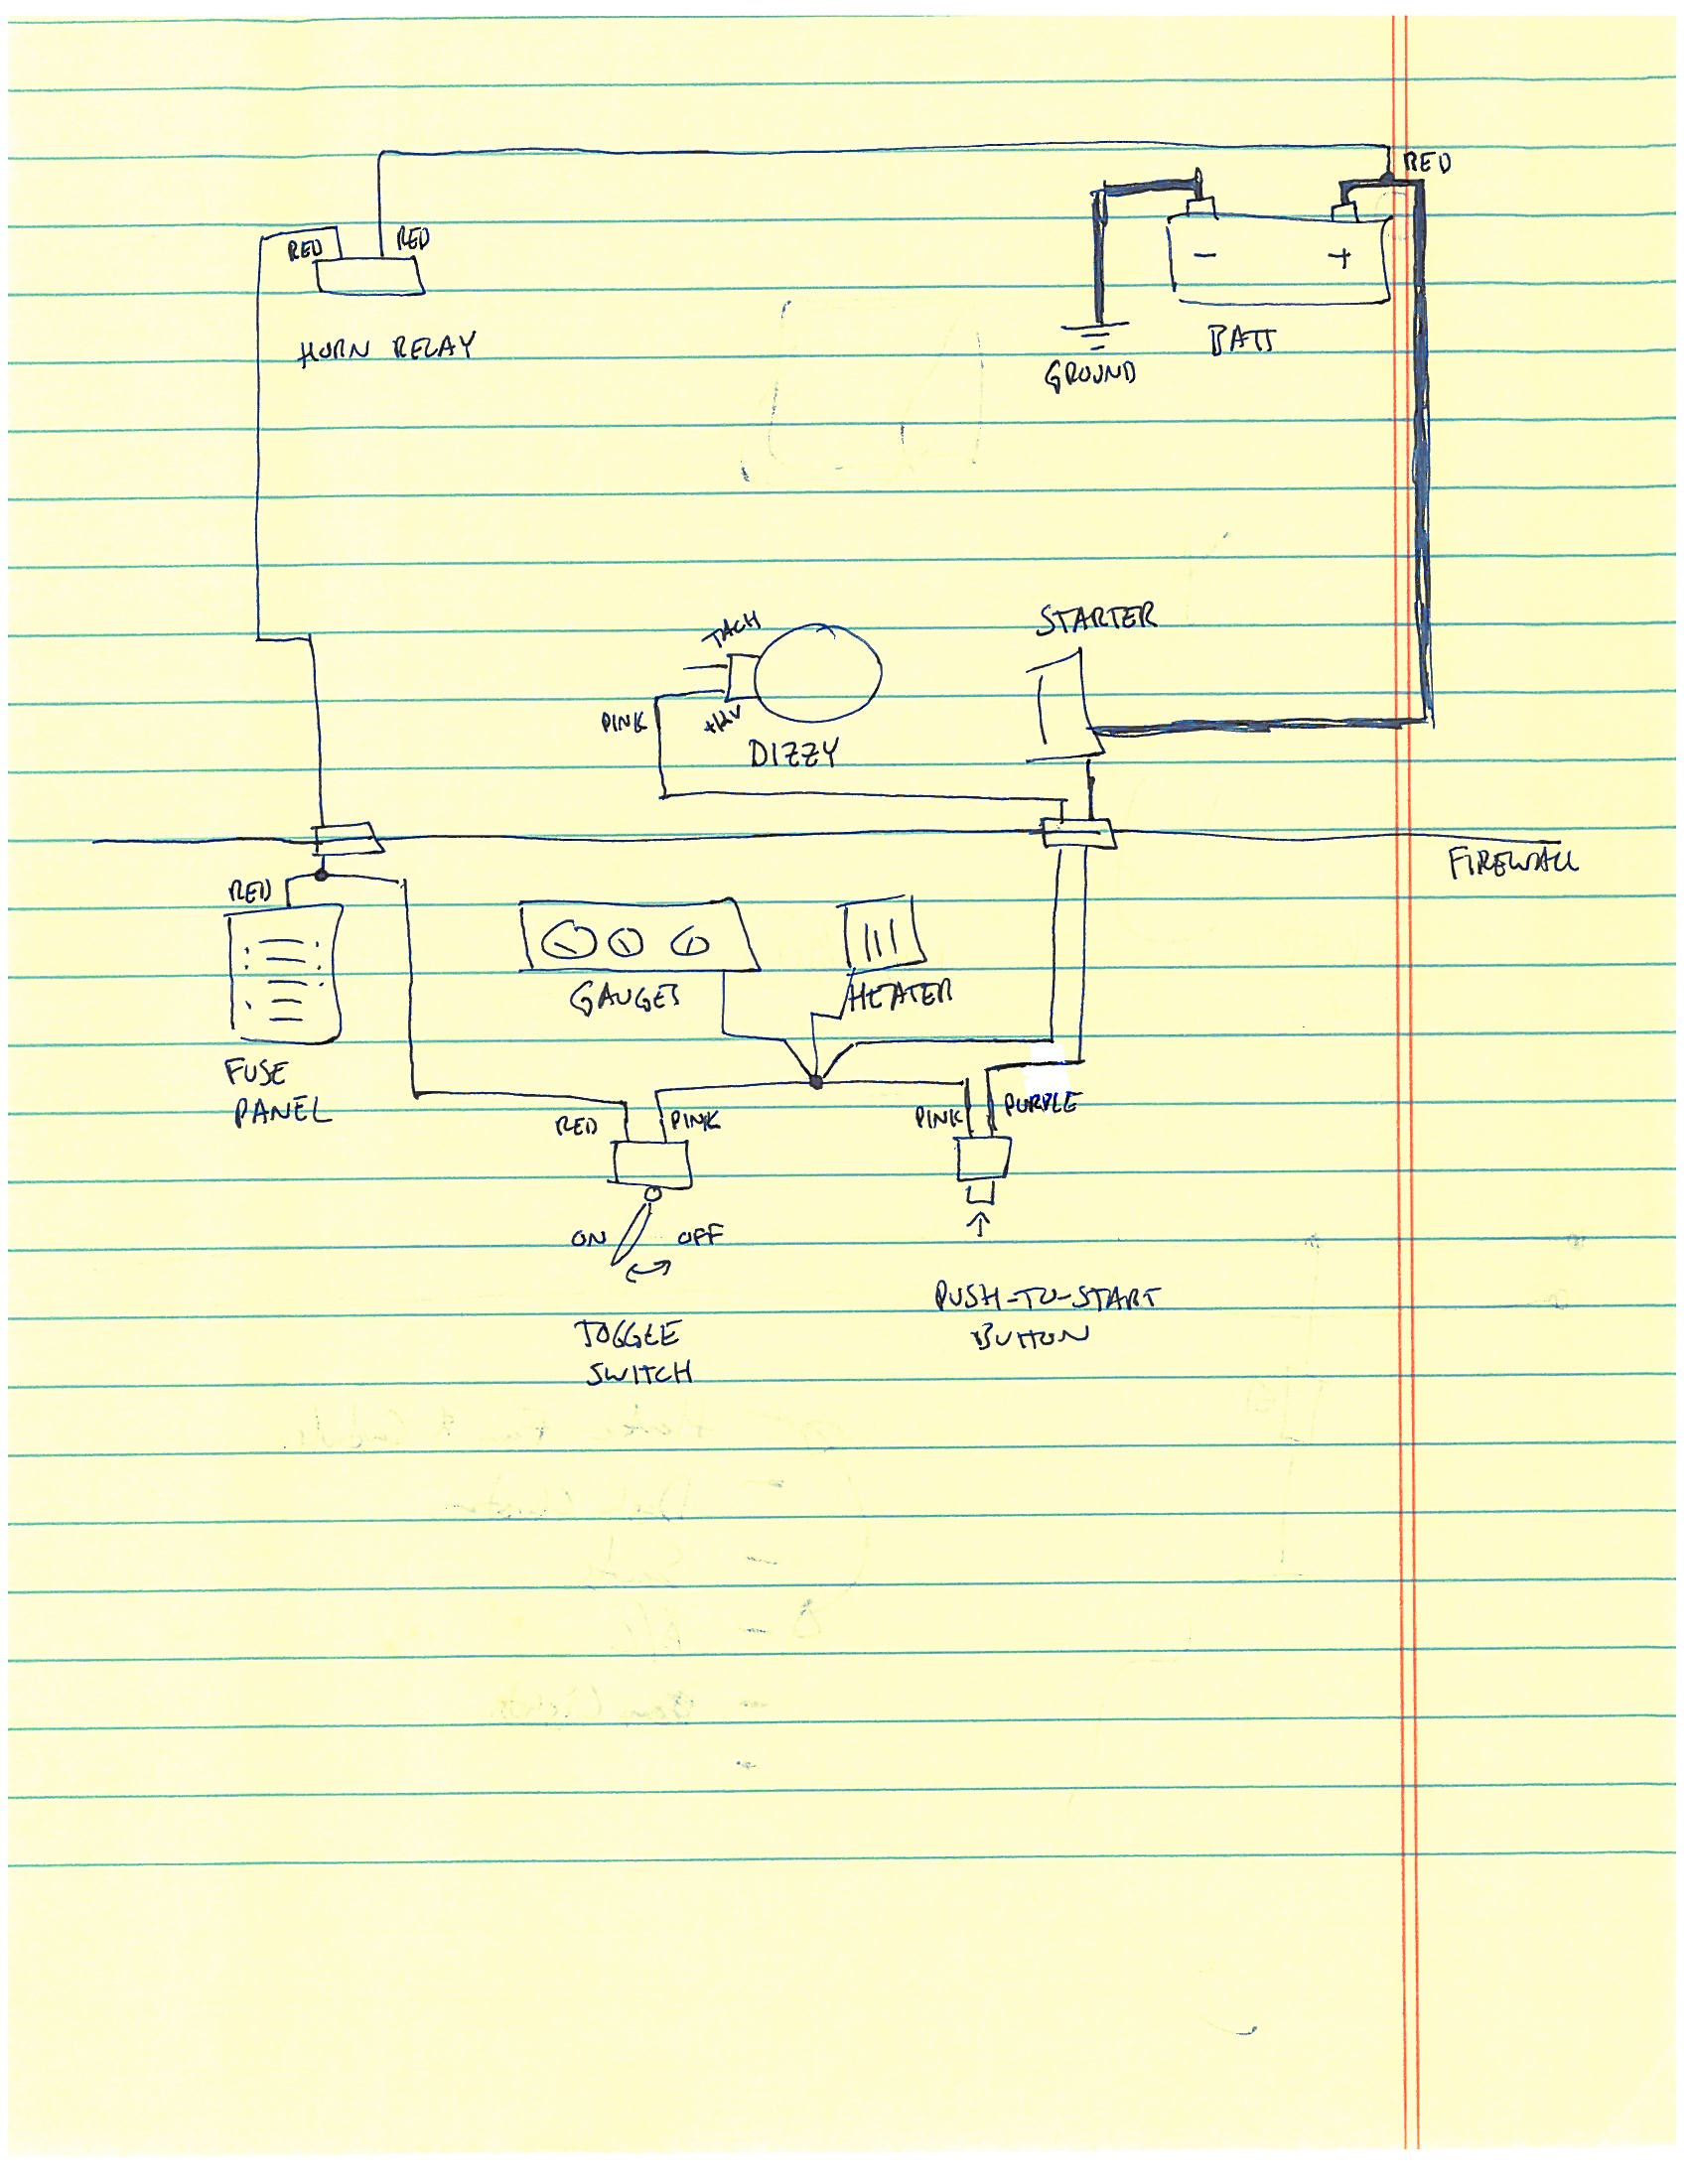 Wiring Example gm truck parts 14519c 1970 chevrolet truck full color wiring 1972 chevy truck ignition switch wiring diagram at reclaimingppi.co